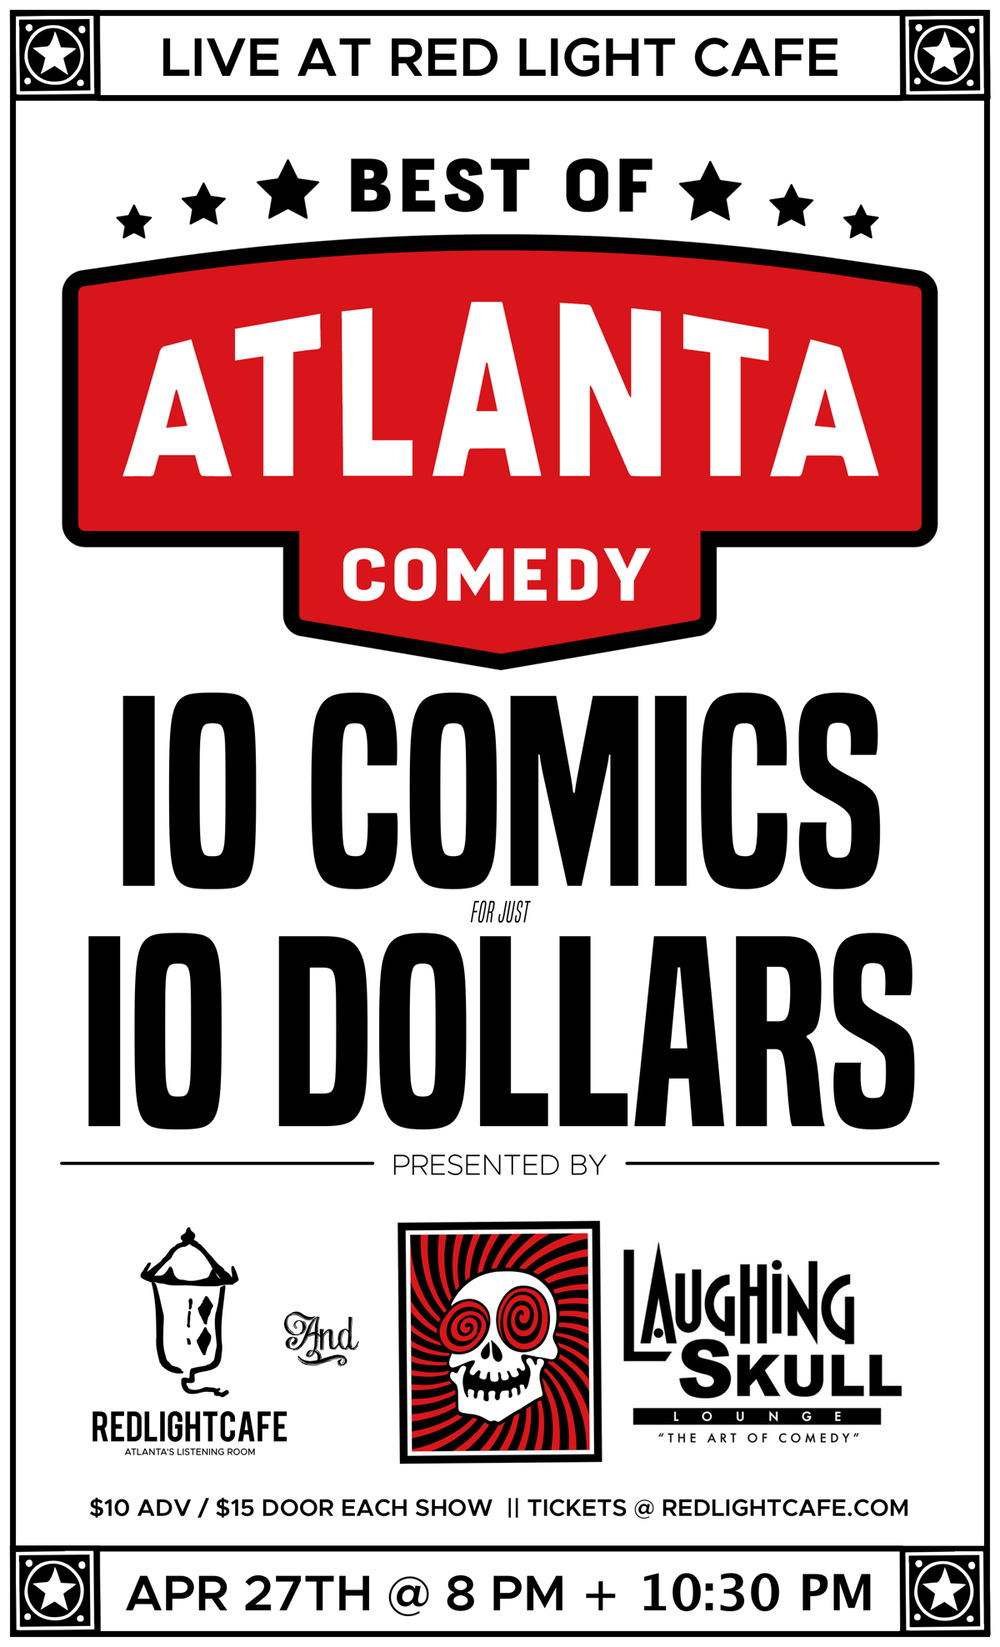 Best of Atlanta Comedy (8pm Show) at Red Light Café presented by Laughing Skull Lounge — April 27, 2019 — Red Light Café, Atlanta, GA